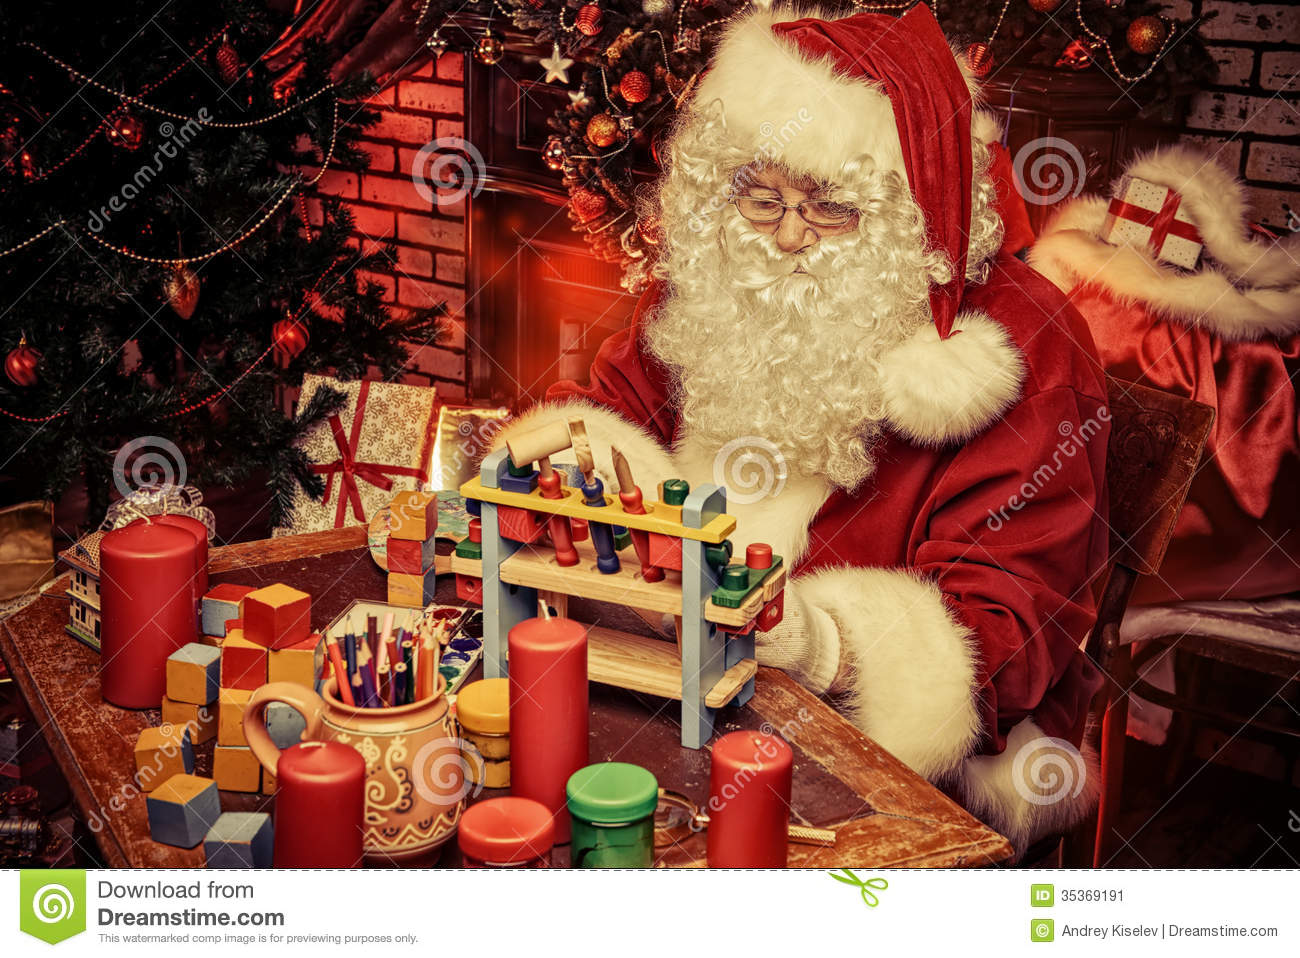 Wooden toys stock image. Image of carpentry, presents ...